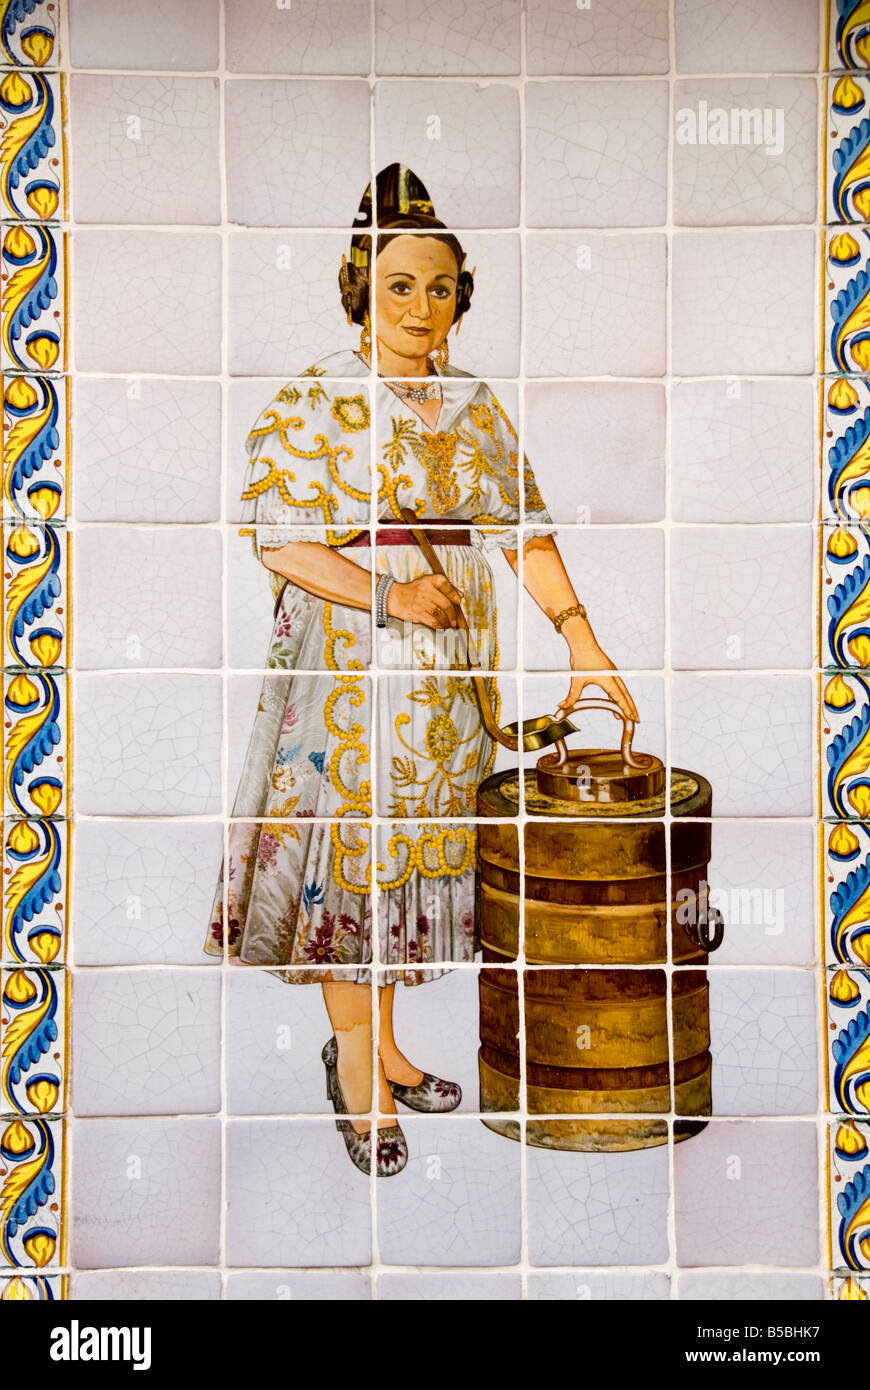 Detail of old horchateria (tiger nut) cafe sign El Siglo of hand painted tiles or Azulejos in the historical city - Stock Image